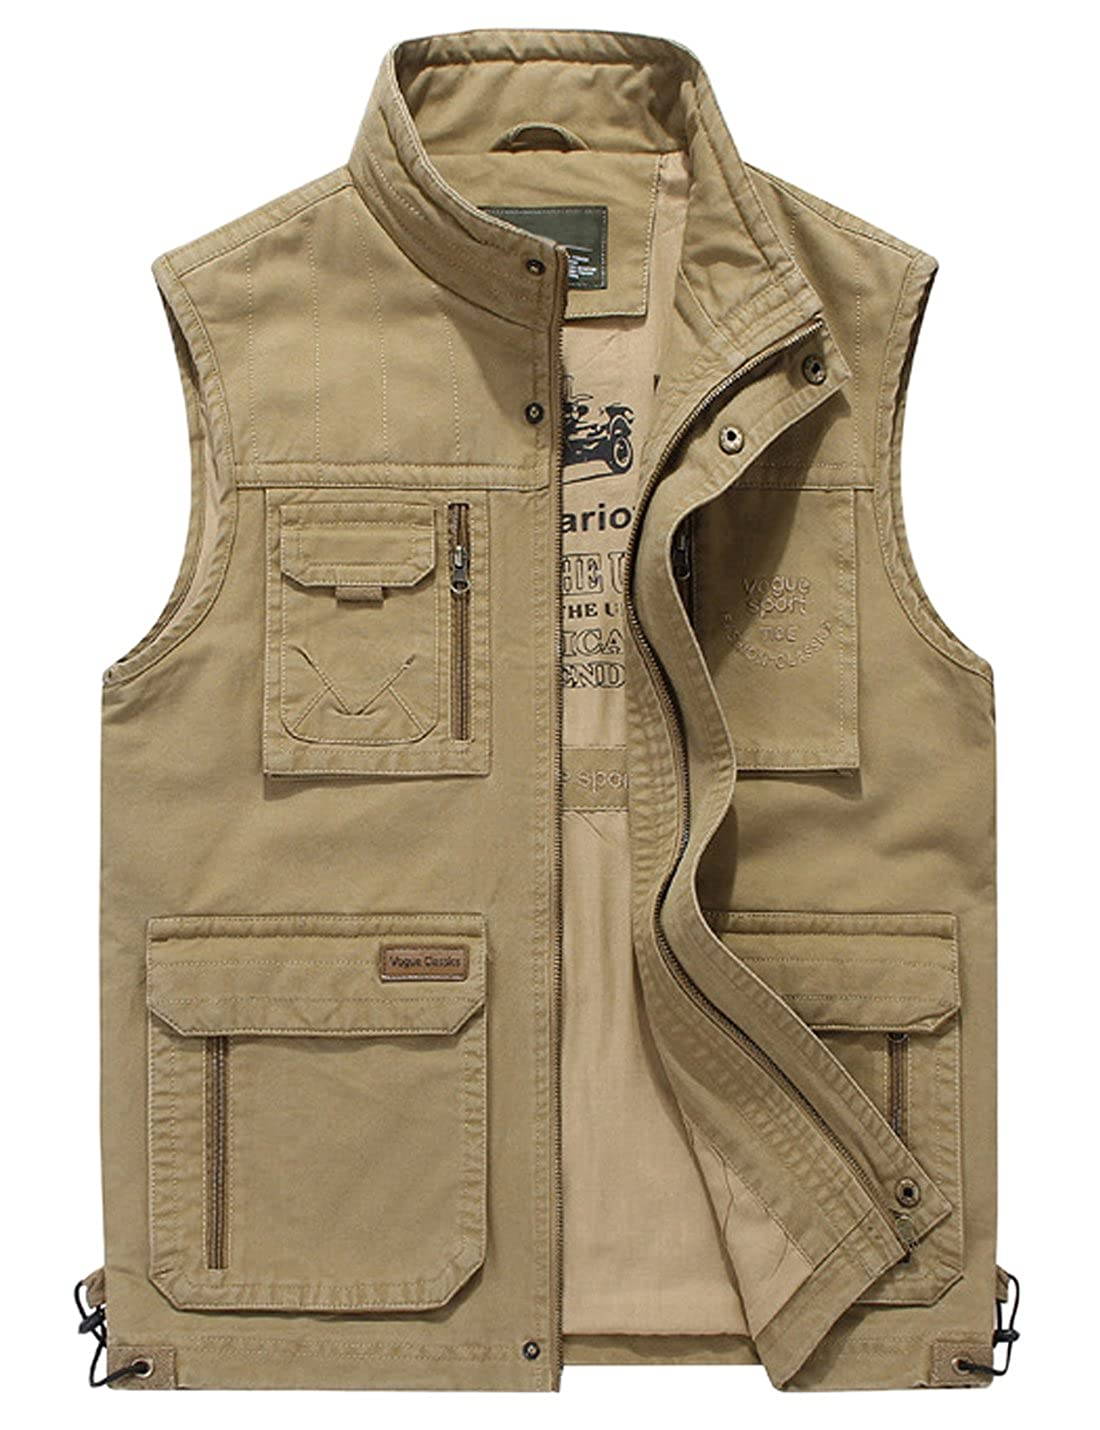 Gihuo Men's Winter Outdoor Fishing Hunting Safari Travel Vest Jacket with Pockets